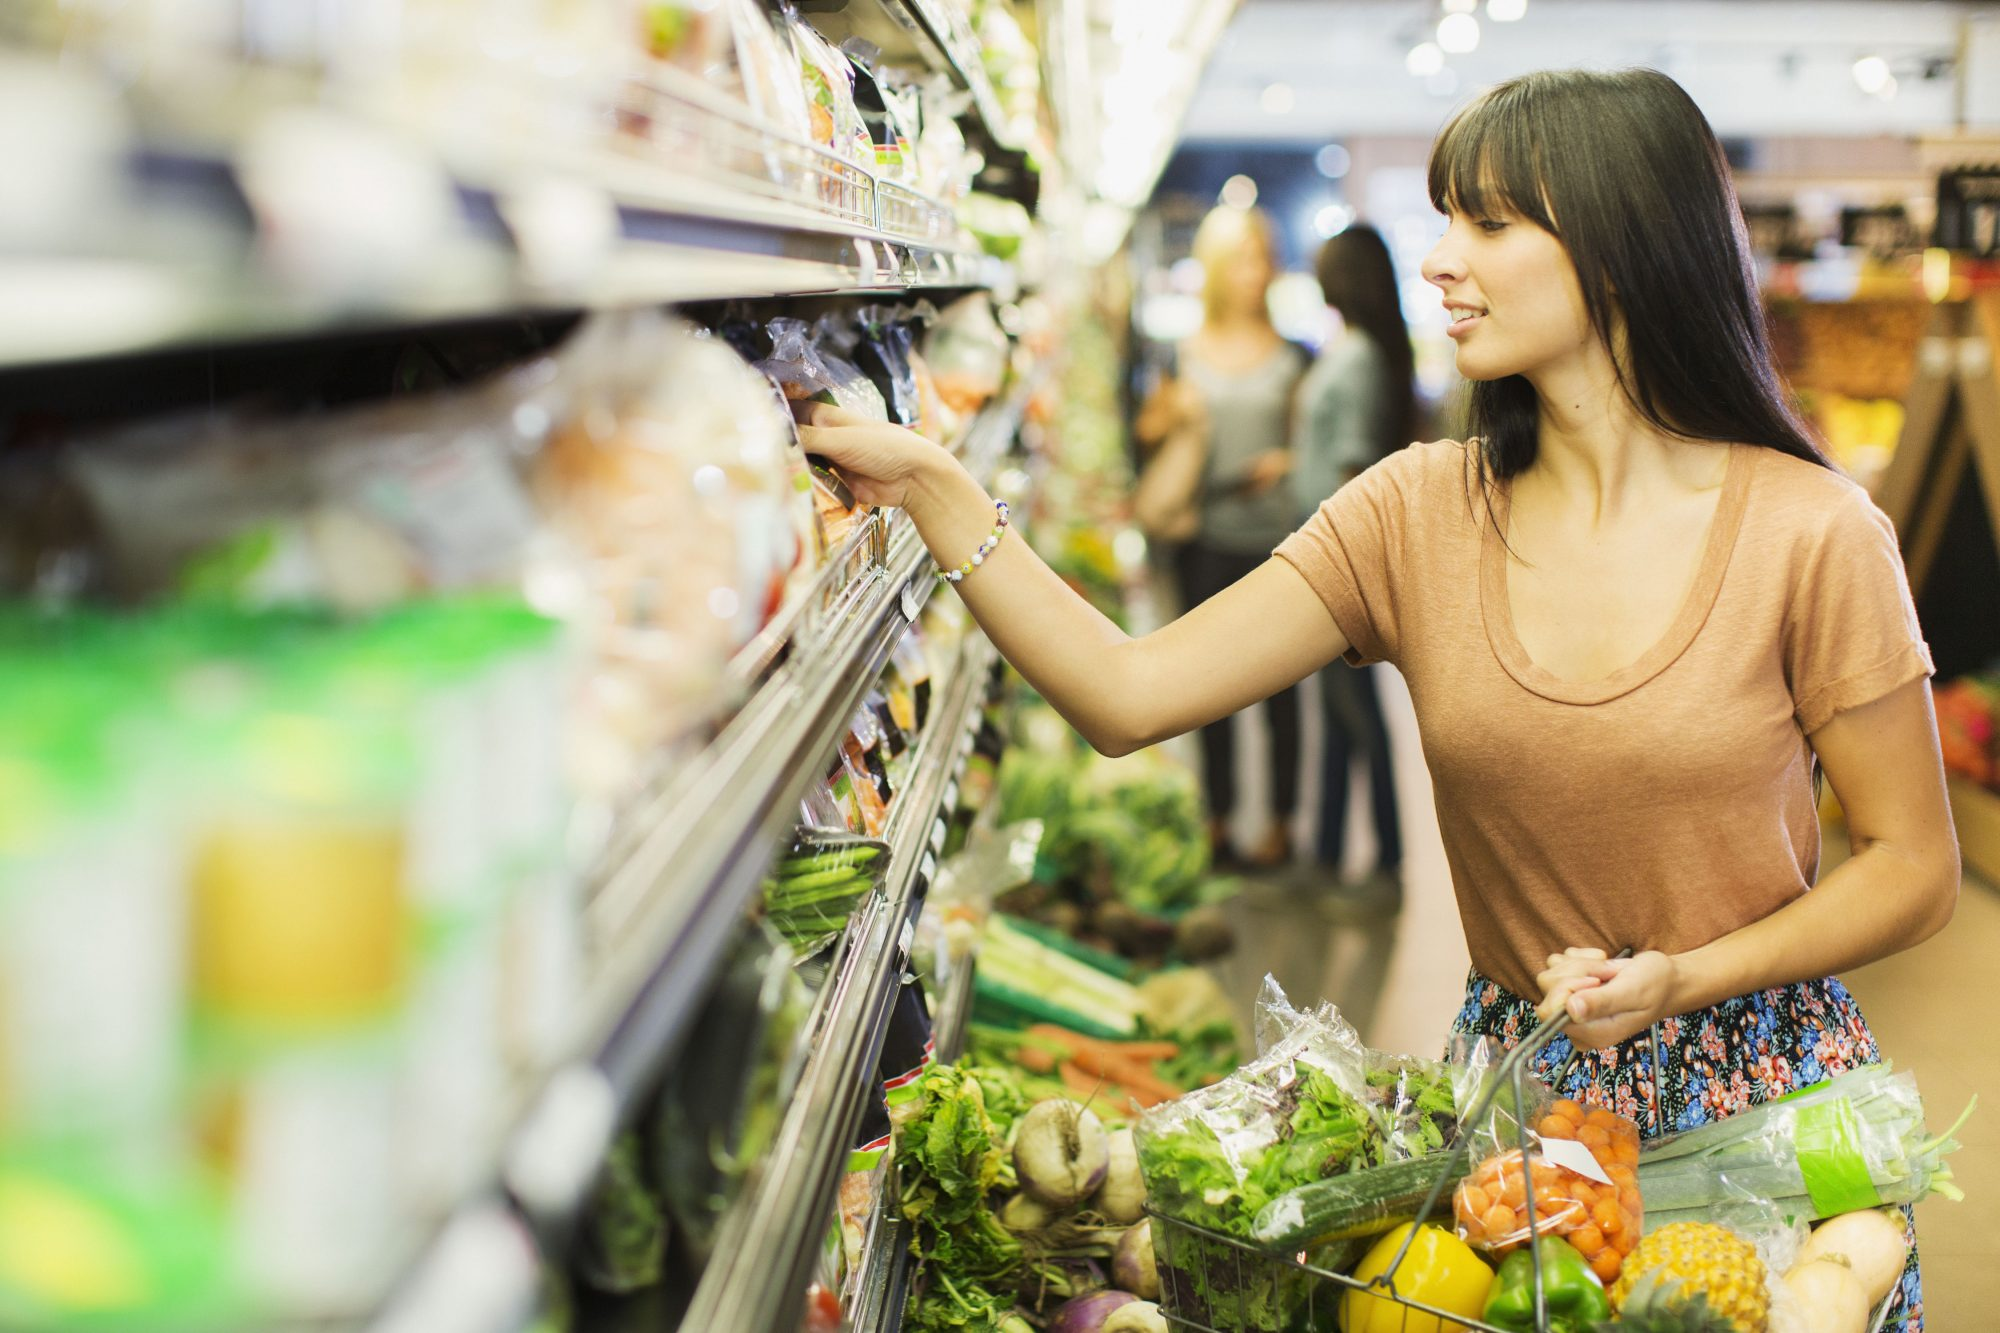 7 Surprising Foods Nutritionists Wish You Would Stop Eating